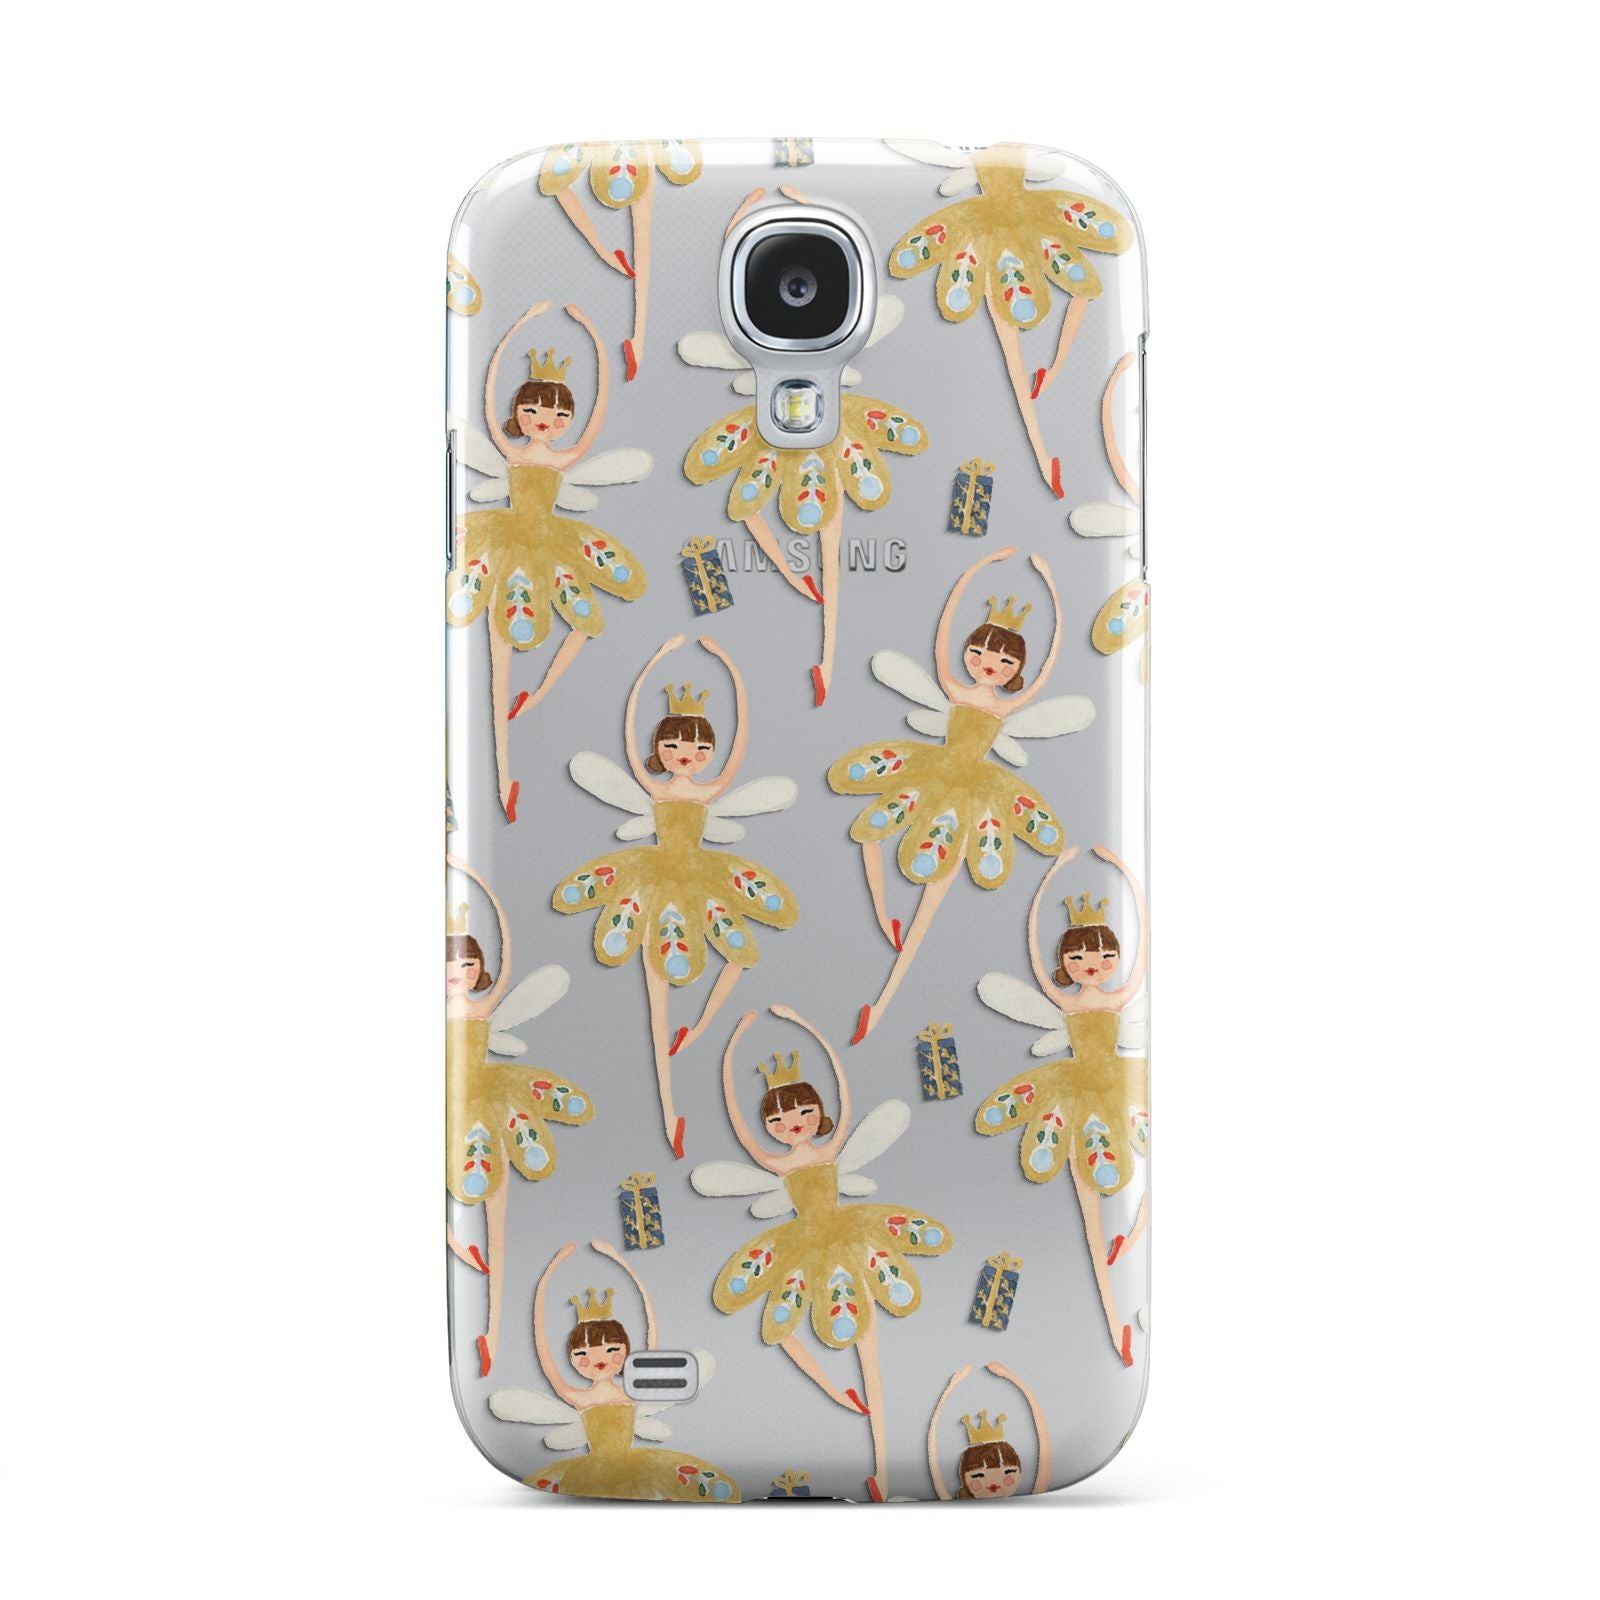 Dancing ballerina princess Samsung Galaxy S4 Case